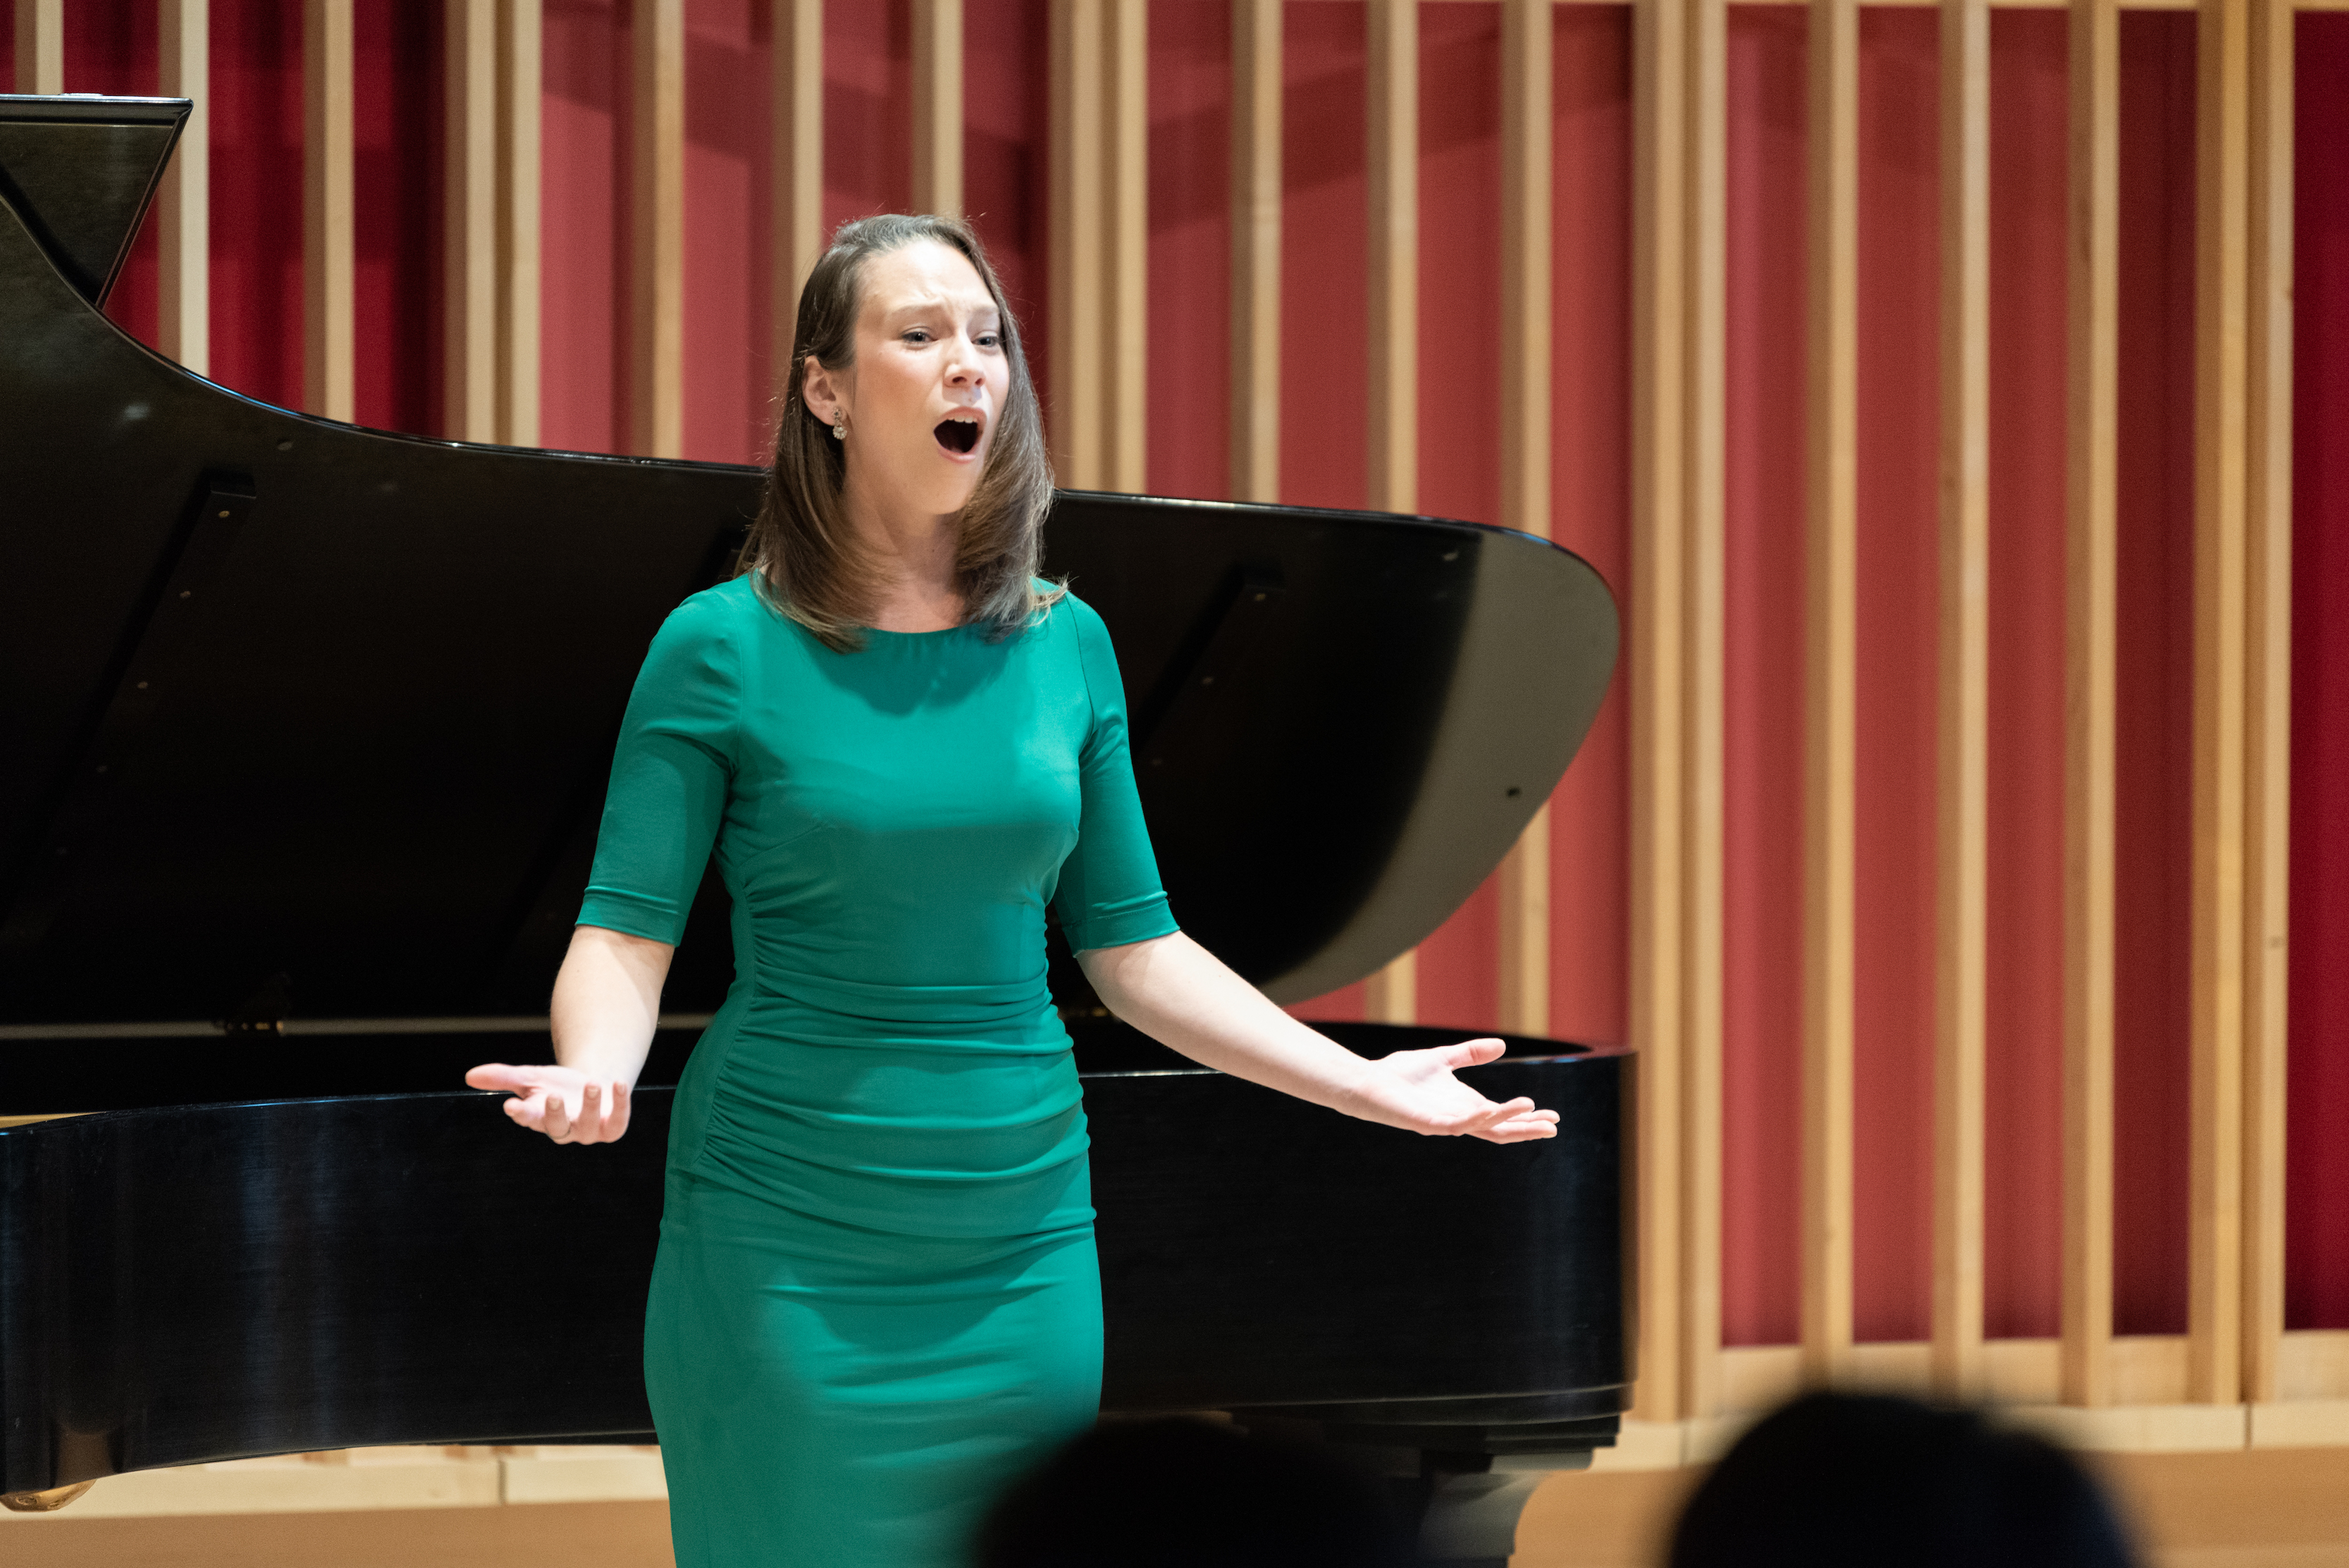 Conservatory Concerto Competition: Vocal Arts Preliminary Round